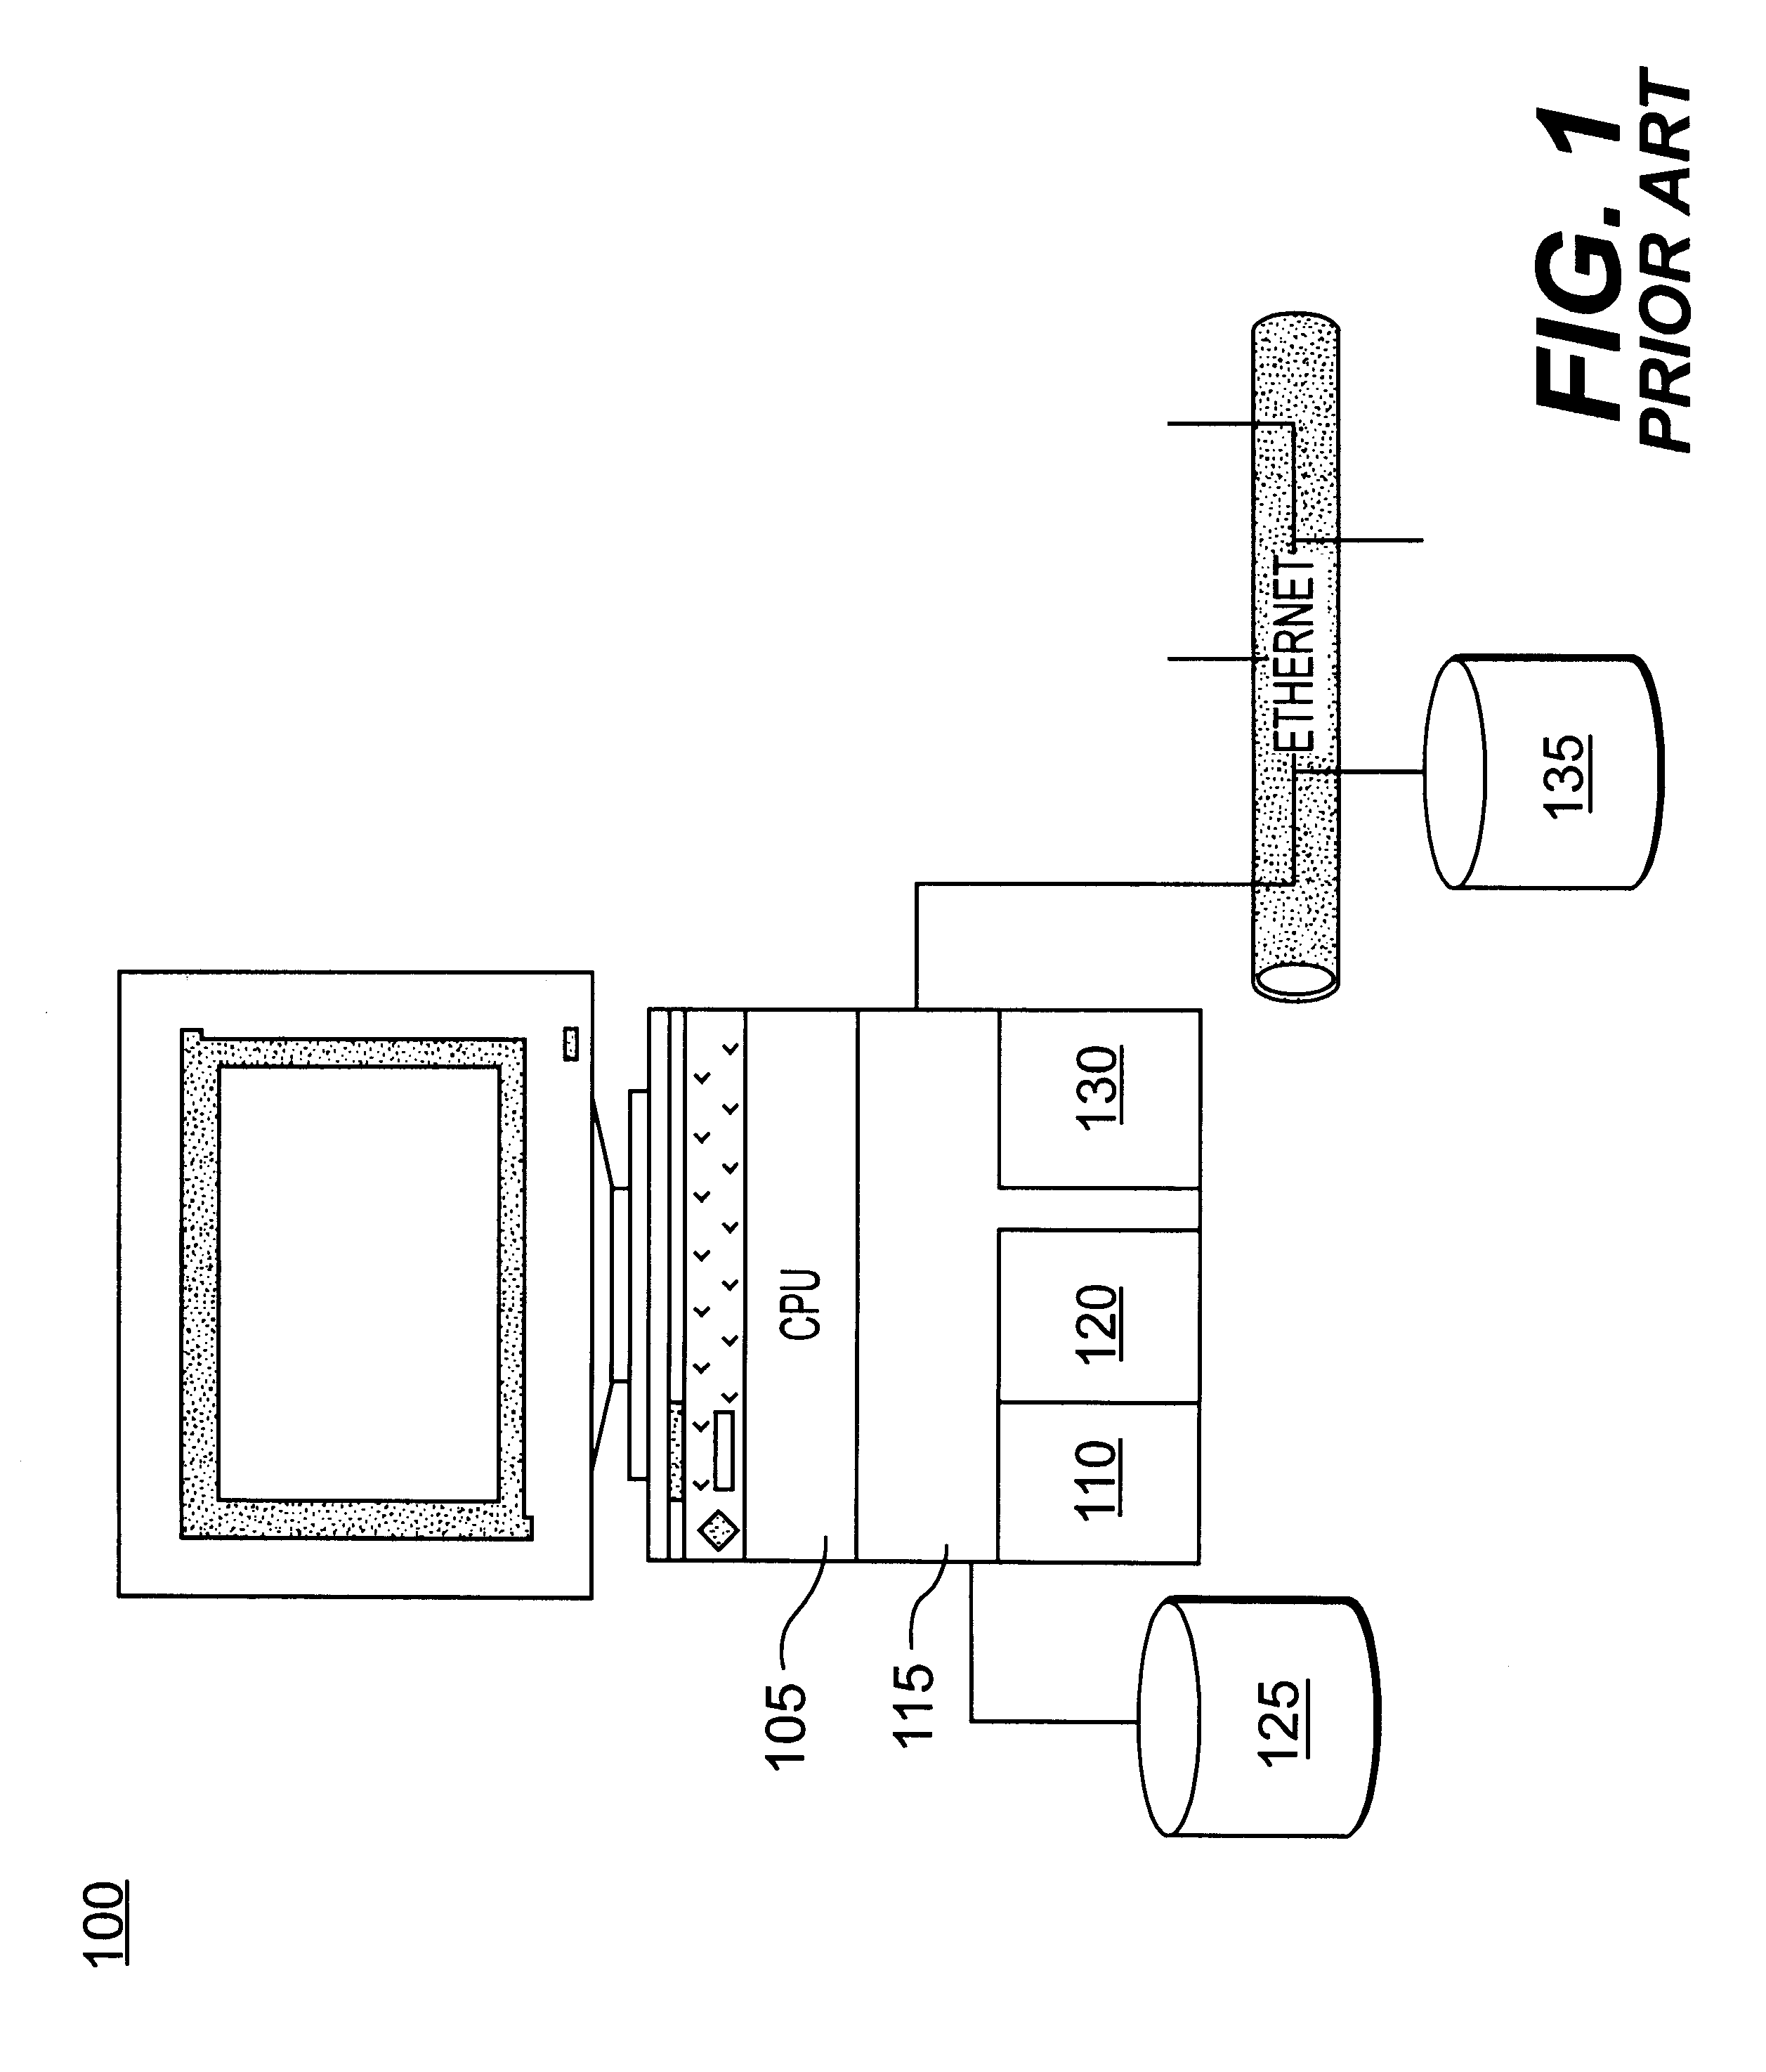 patent us6240406 system and method for optimizing queries with aggregates and collection. Black Bedroom Furniture Sets. Home Design Ideas